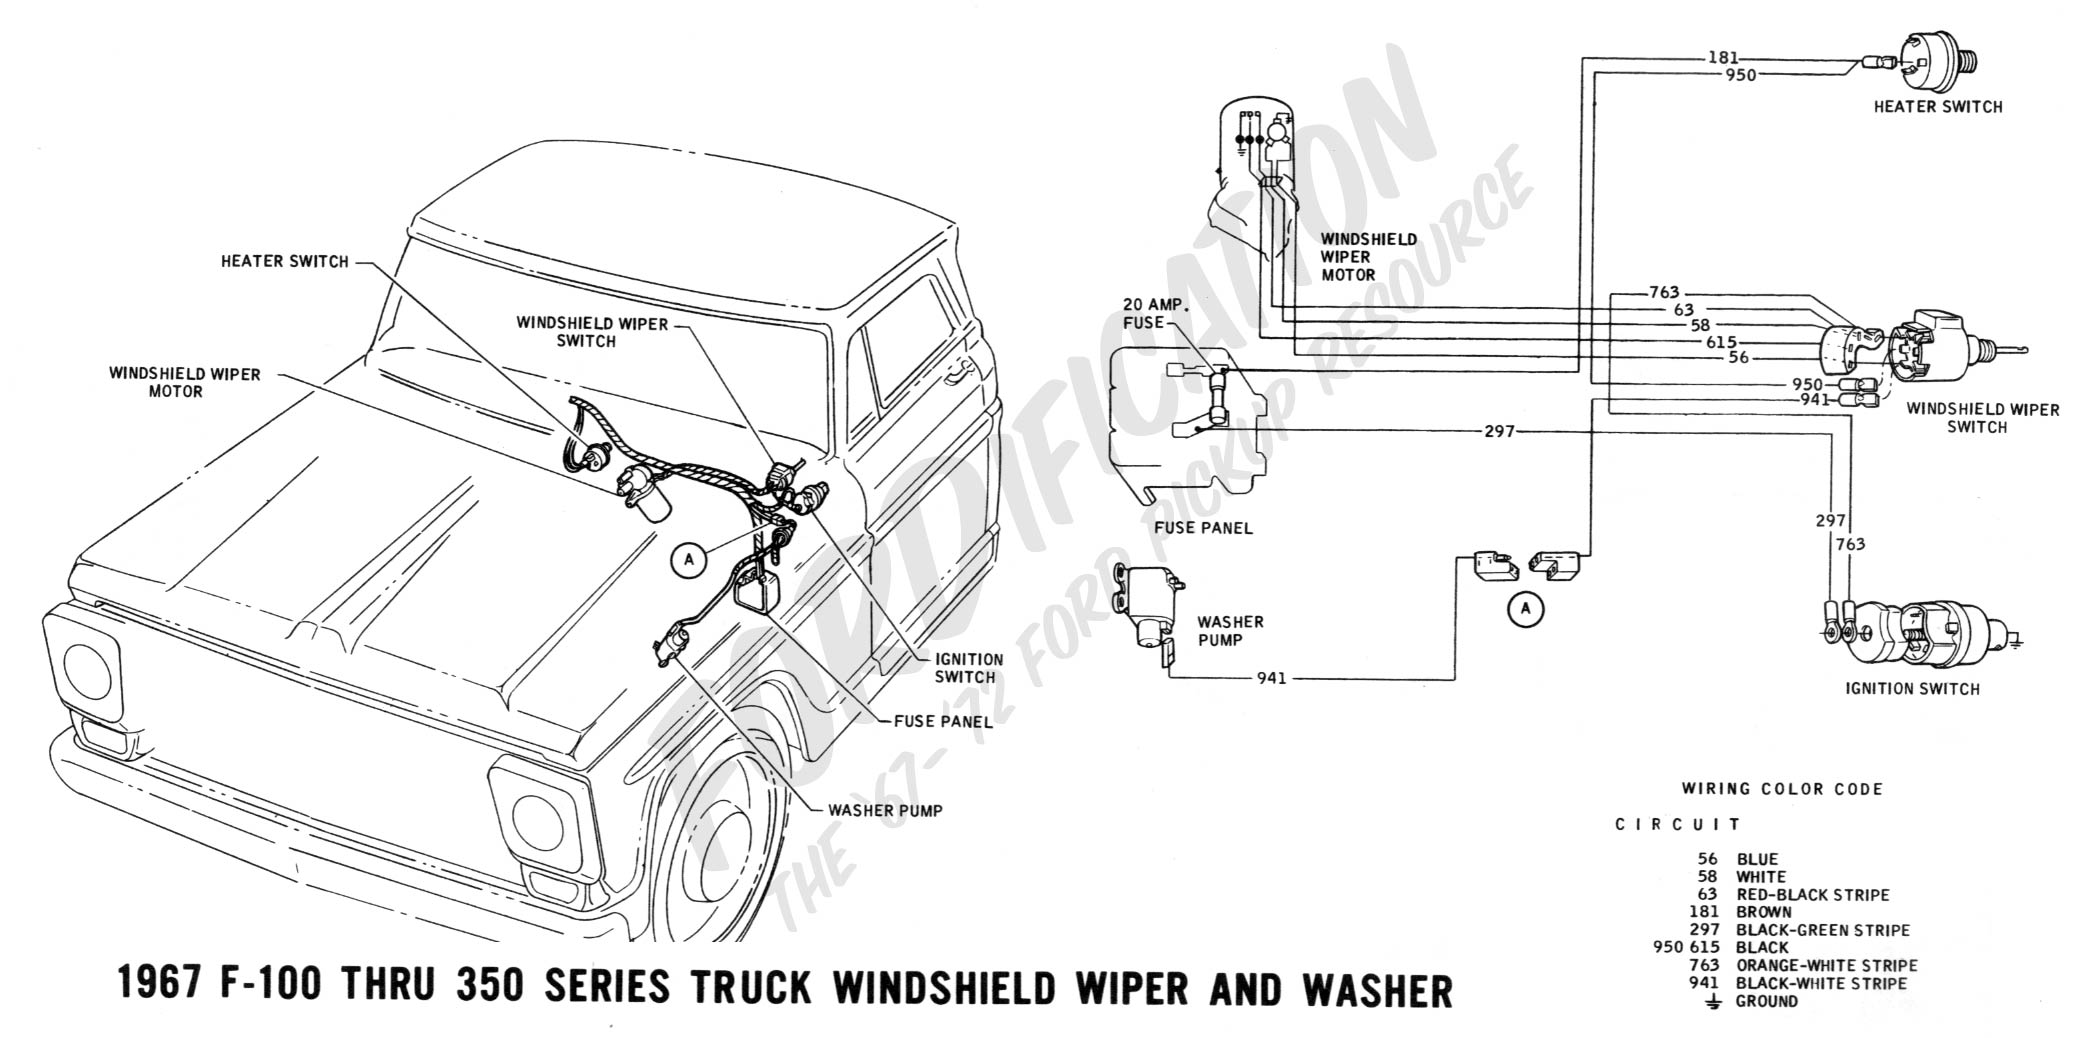 1968 C10 Fuse Box Diagram Wiring Schematic Download Chevy Truck in addition 803410 68 Column likewise BI8d 13282 also 334 in addition Radio. on 65 chevy c10 wire diagram